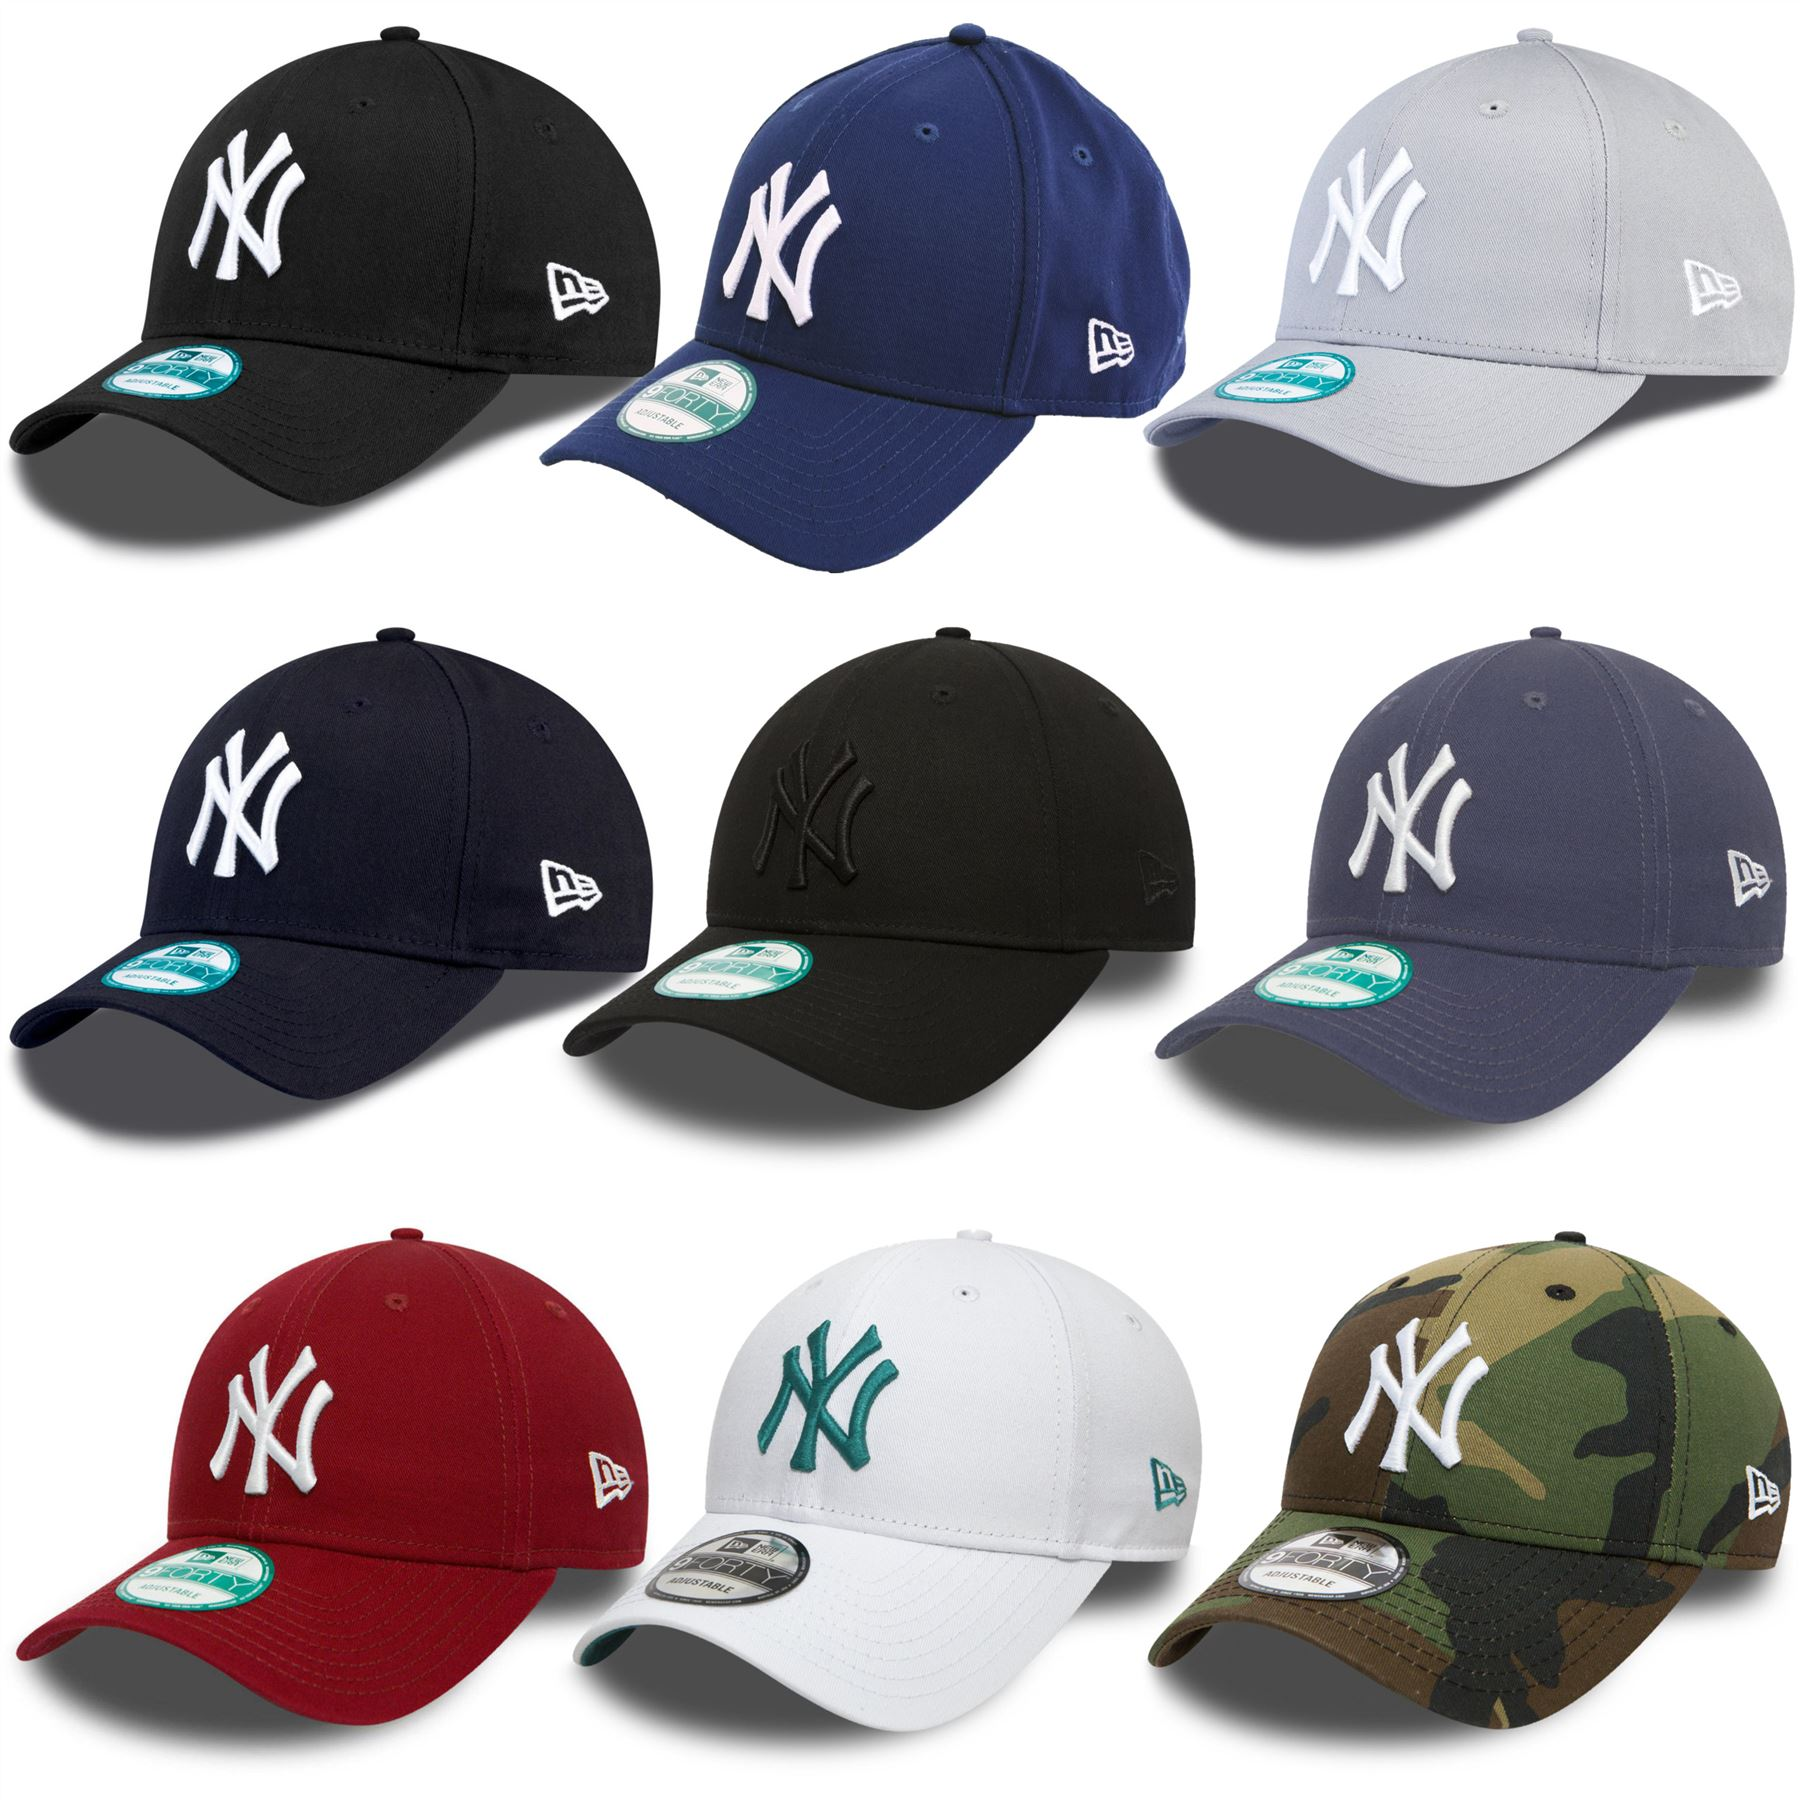 8c25f2321cd04 ... sale new era 9forty new york yankees adjustable baseball cap black blue  grey f260d 0f3fd